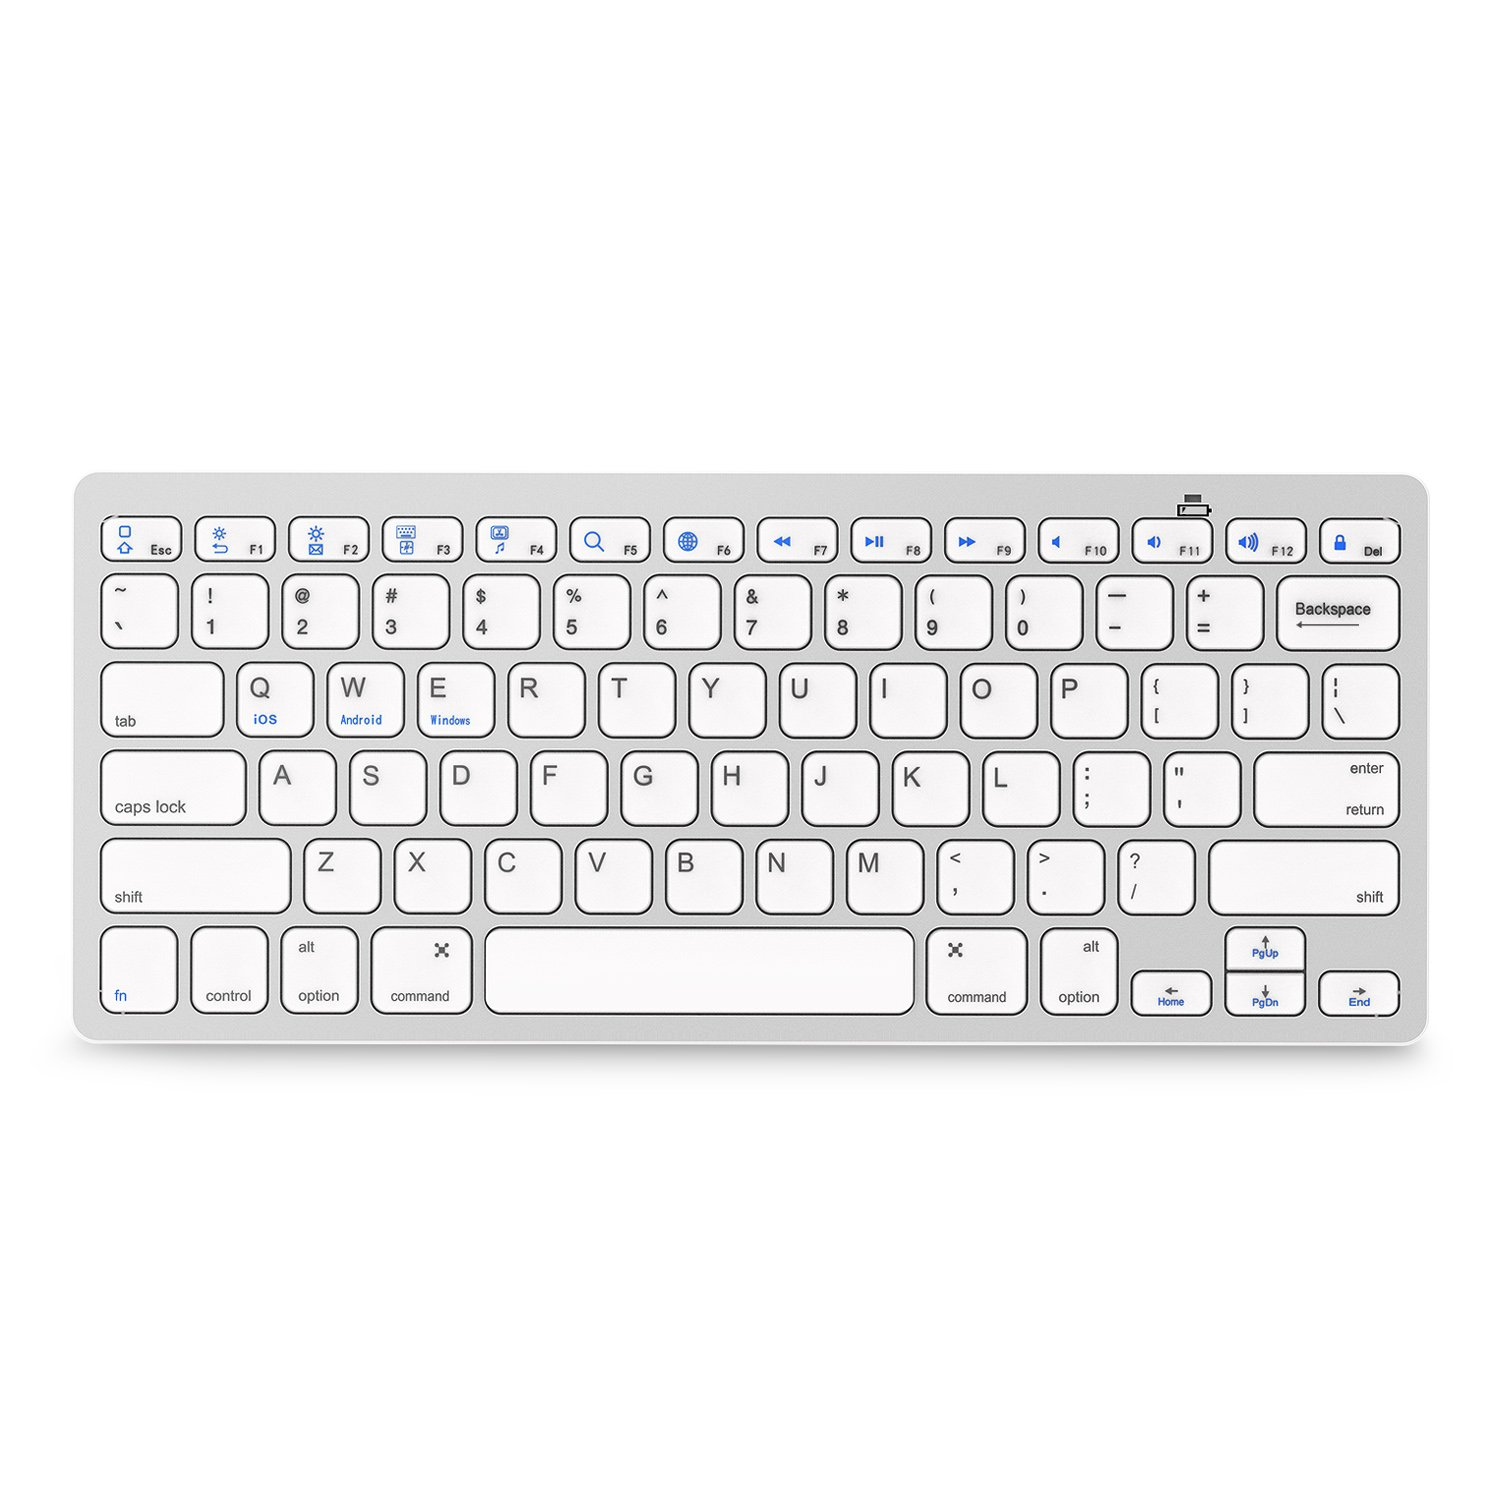 Bluetooth Keyboard — Jelly Comb Compact Bluetooth Keyboard Ultra Slim for iOS Android Windows Mac OS PC Tablet Smartphone (Compatible for iPad pro, iPhone X, SamsungTab, Surface pro and More)-Silver BCM2073